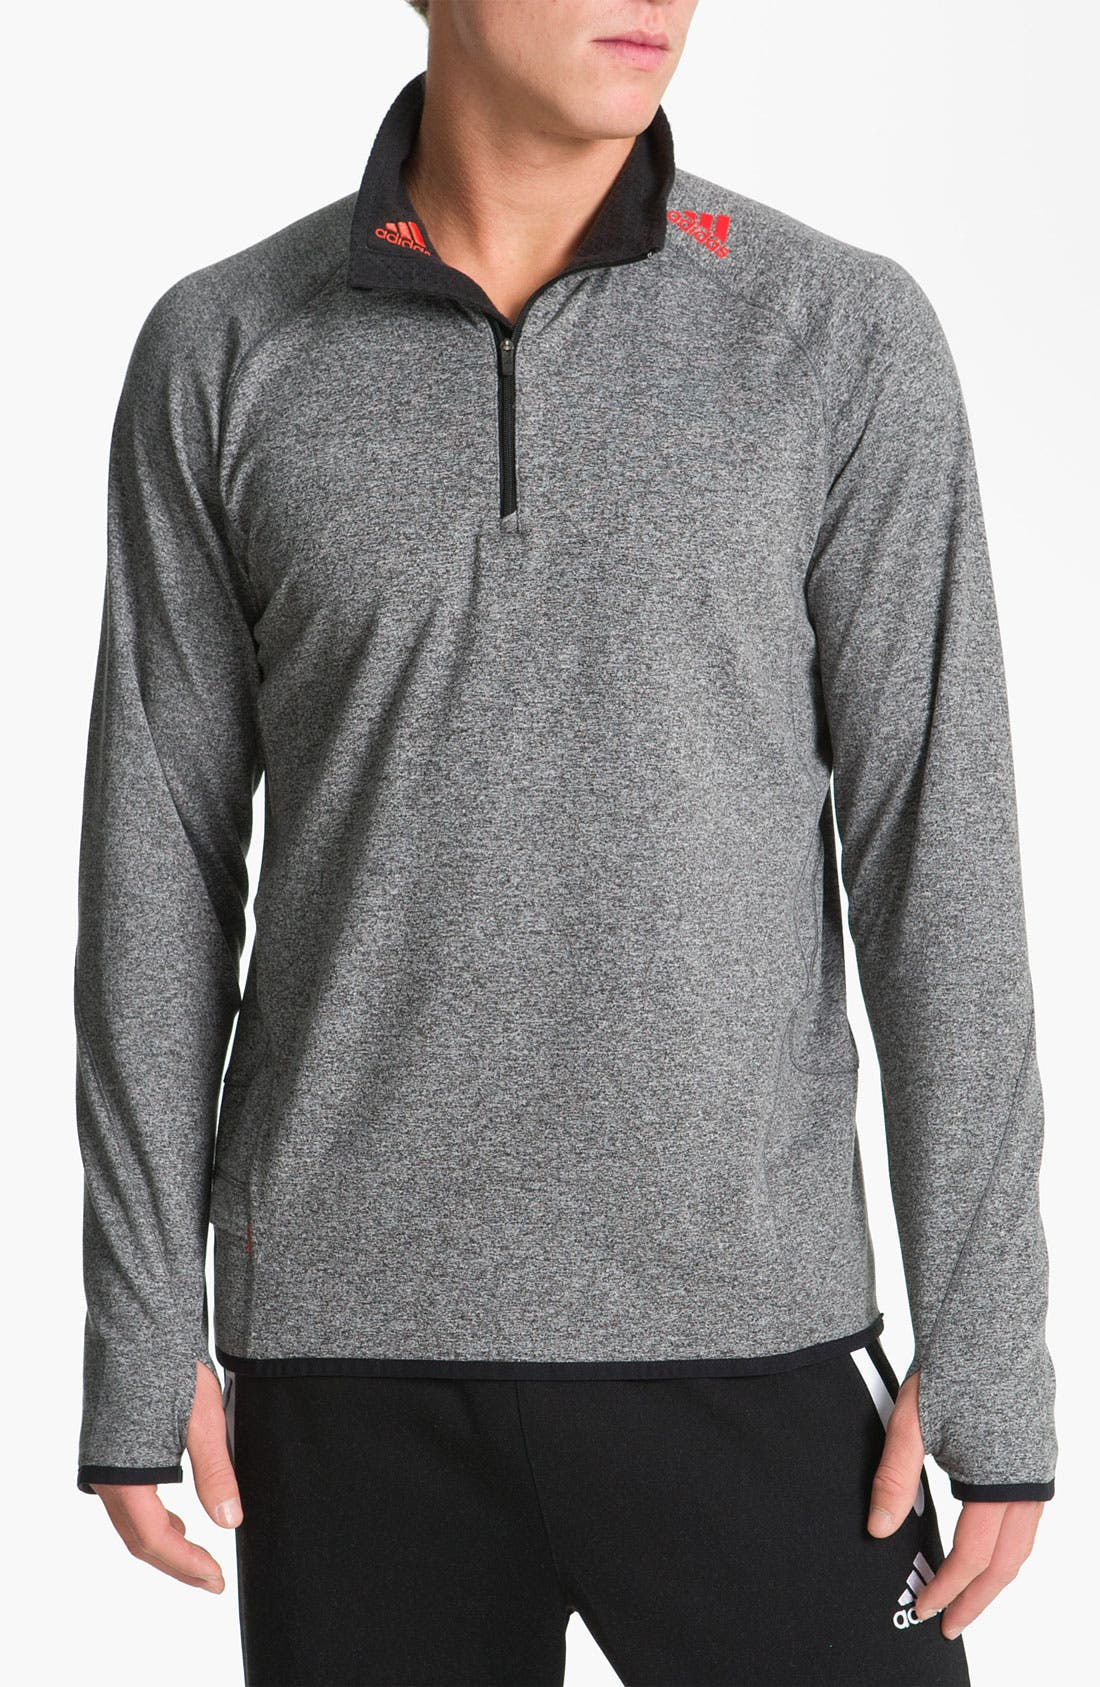 Main Image - adidas 'CLIMA Elite' Quarter Zip Tech Pullover